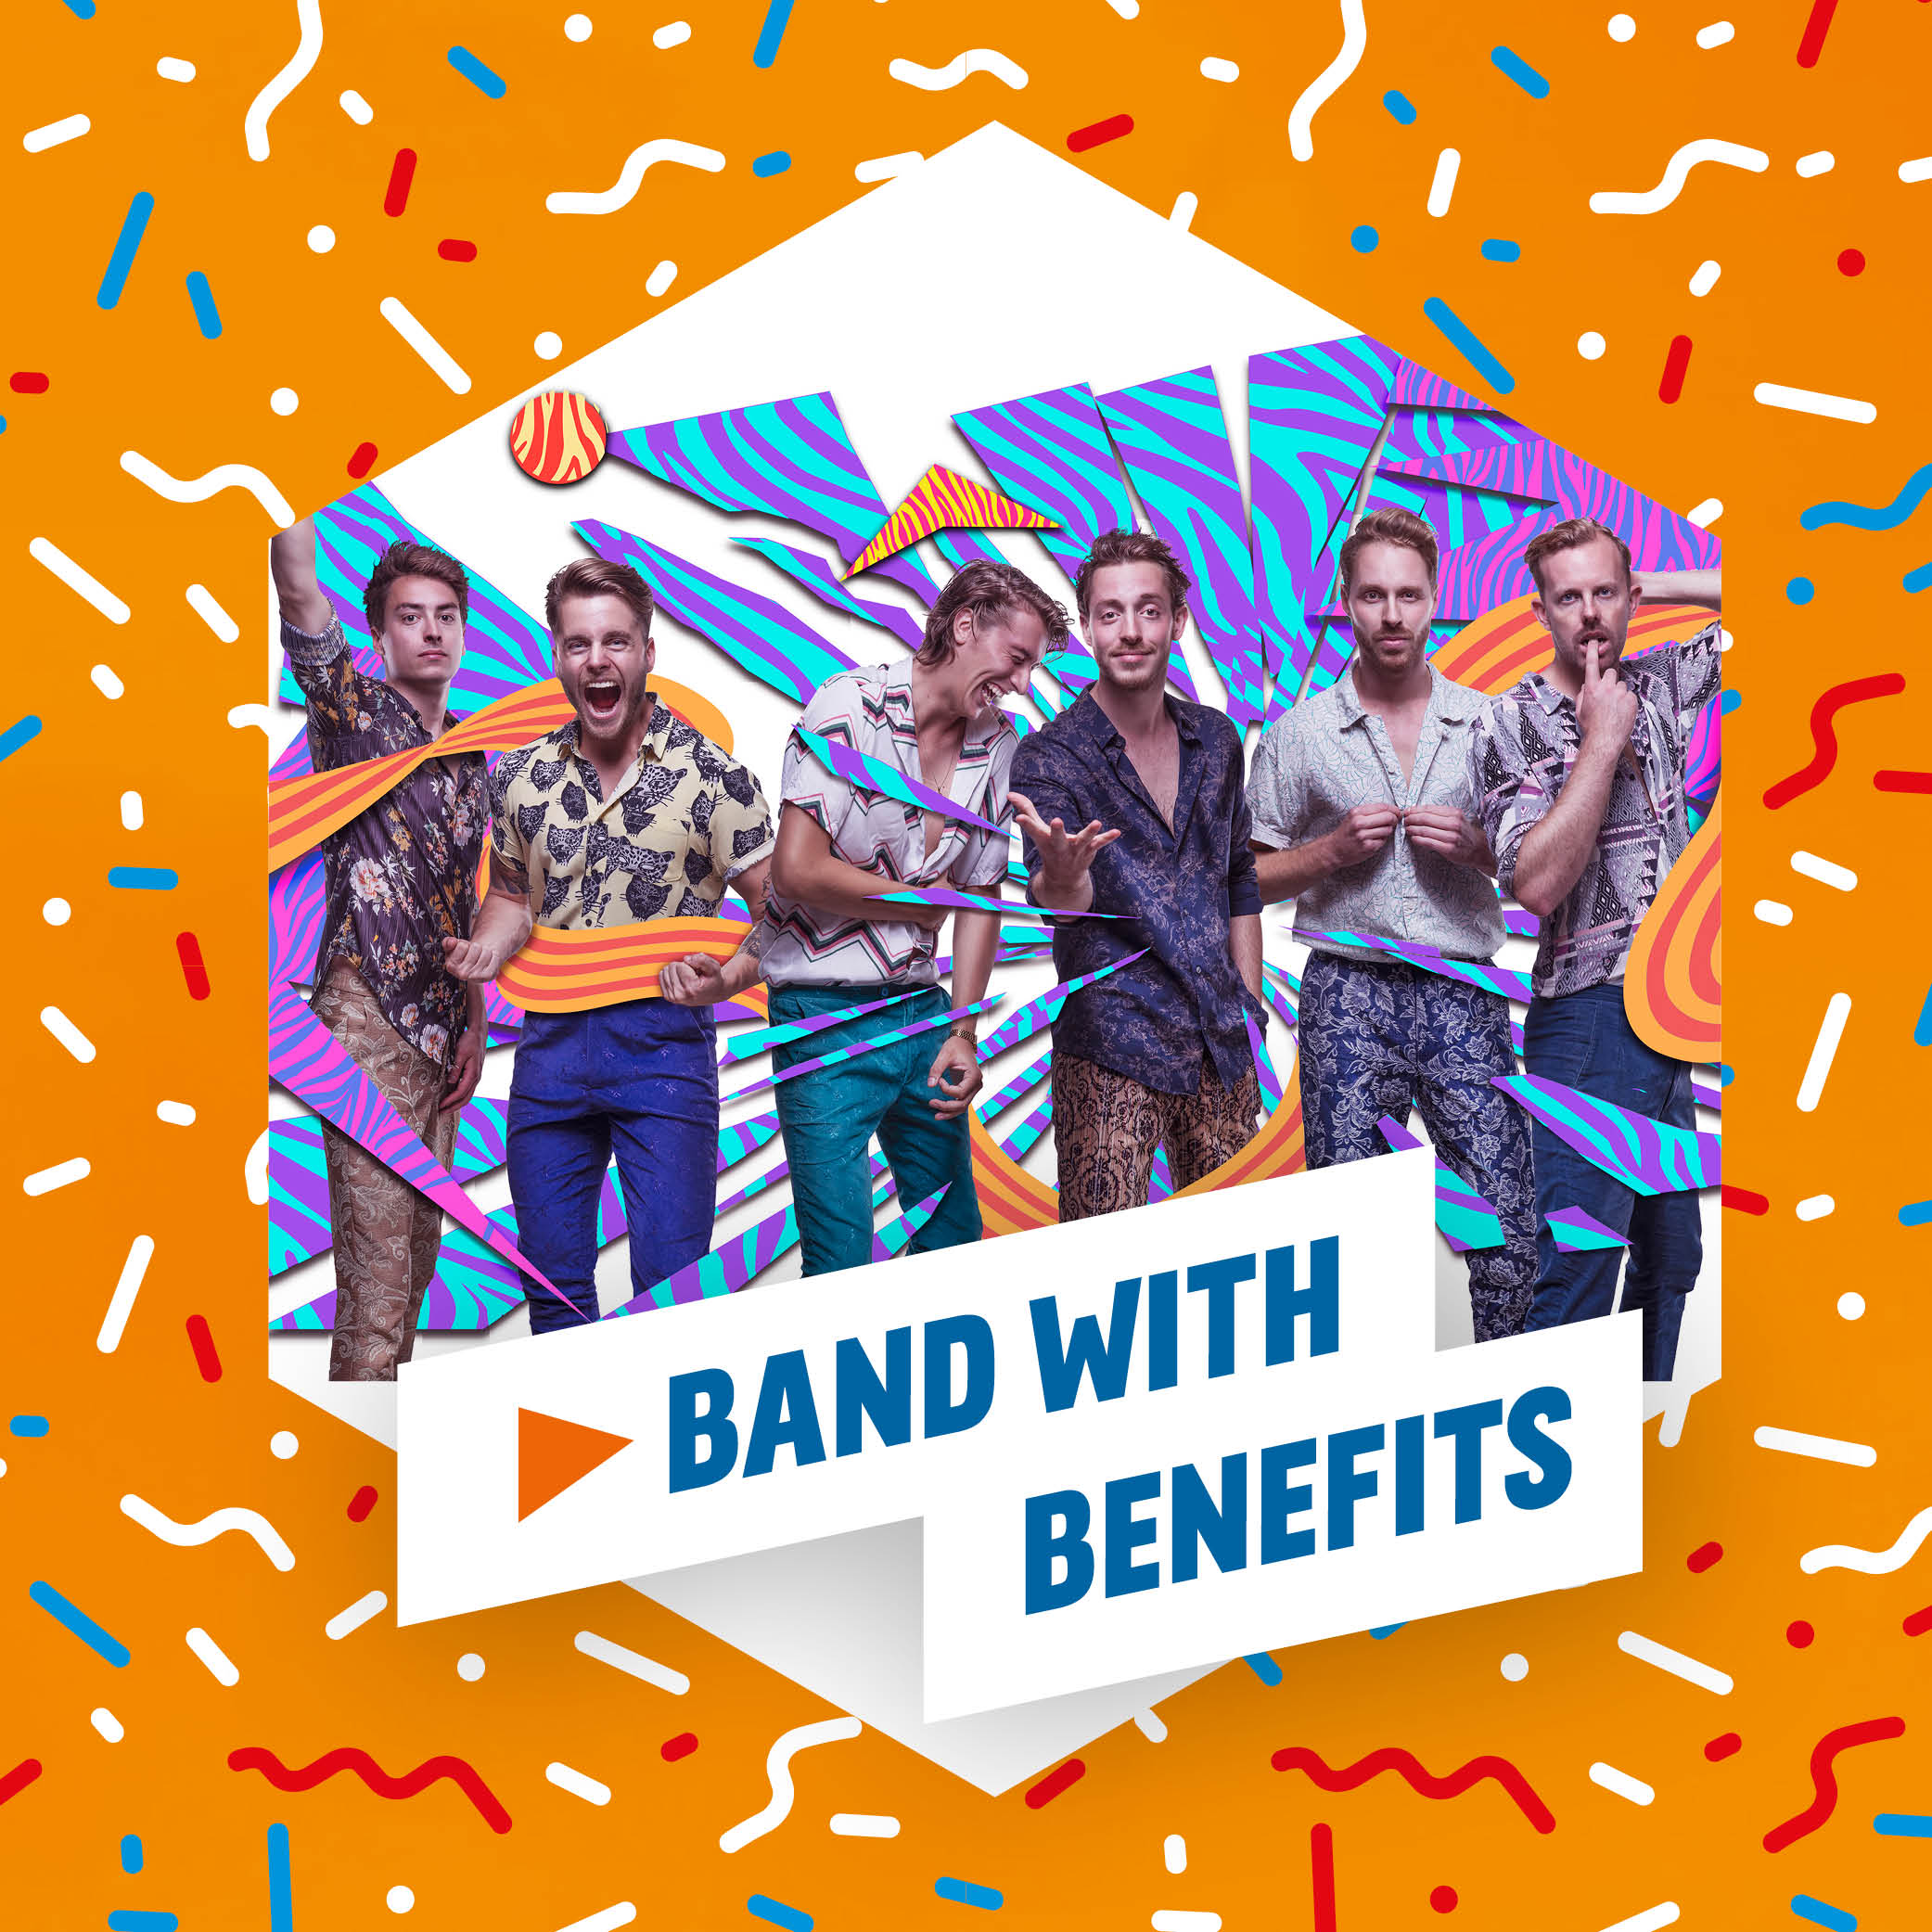 BAND WITH BENEFITS